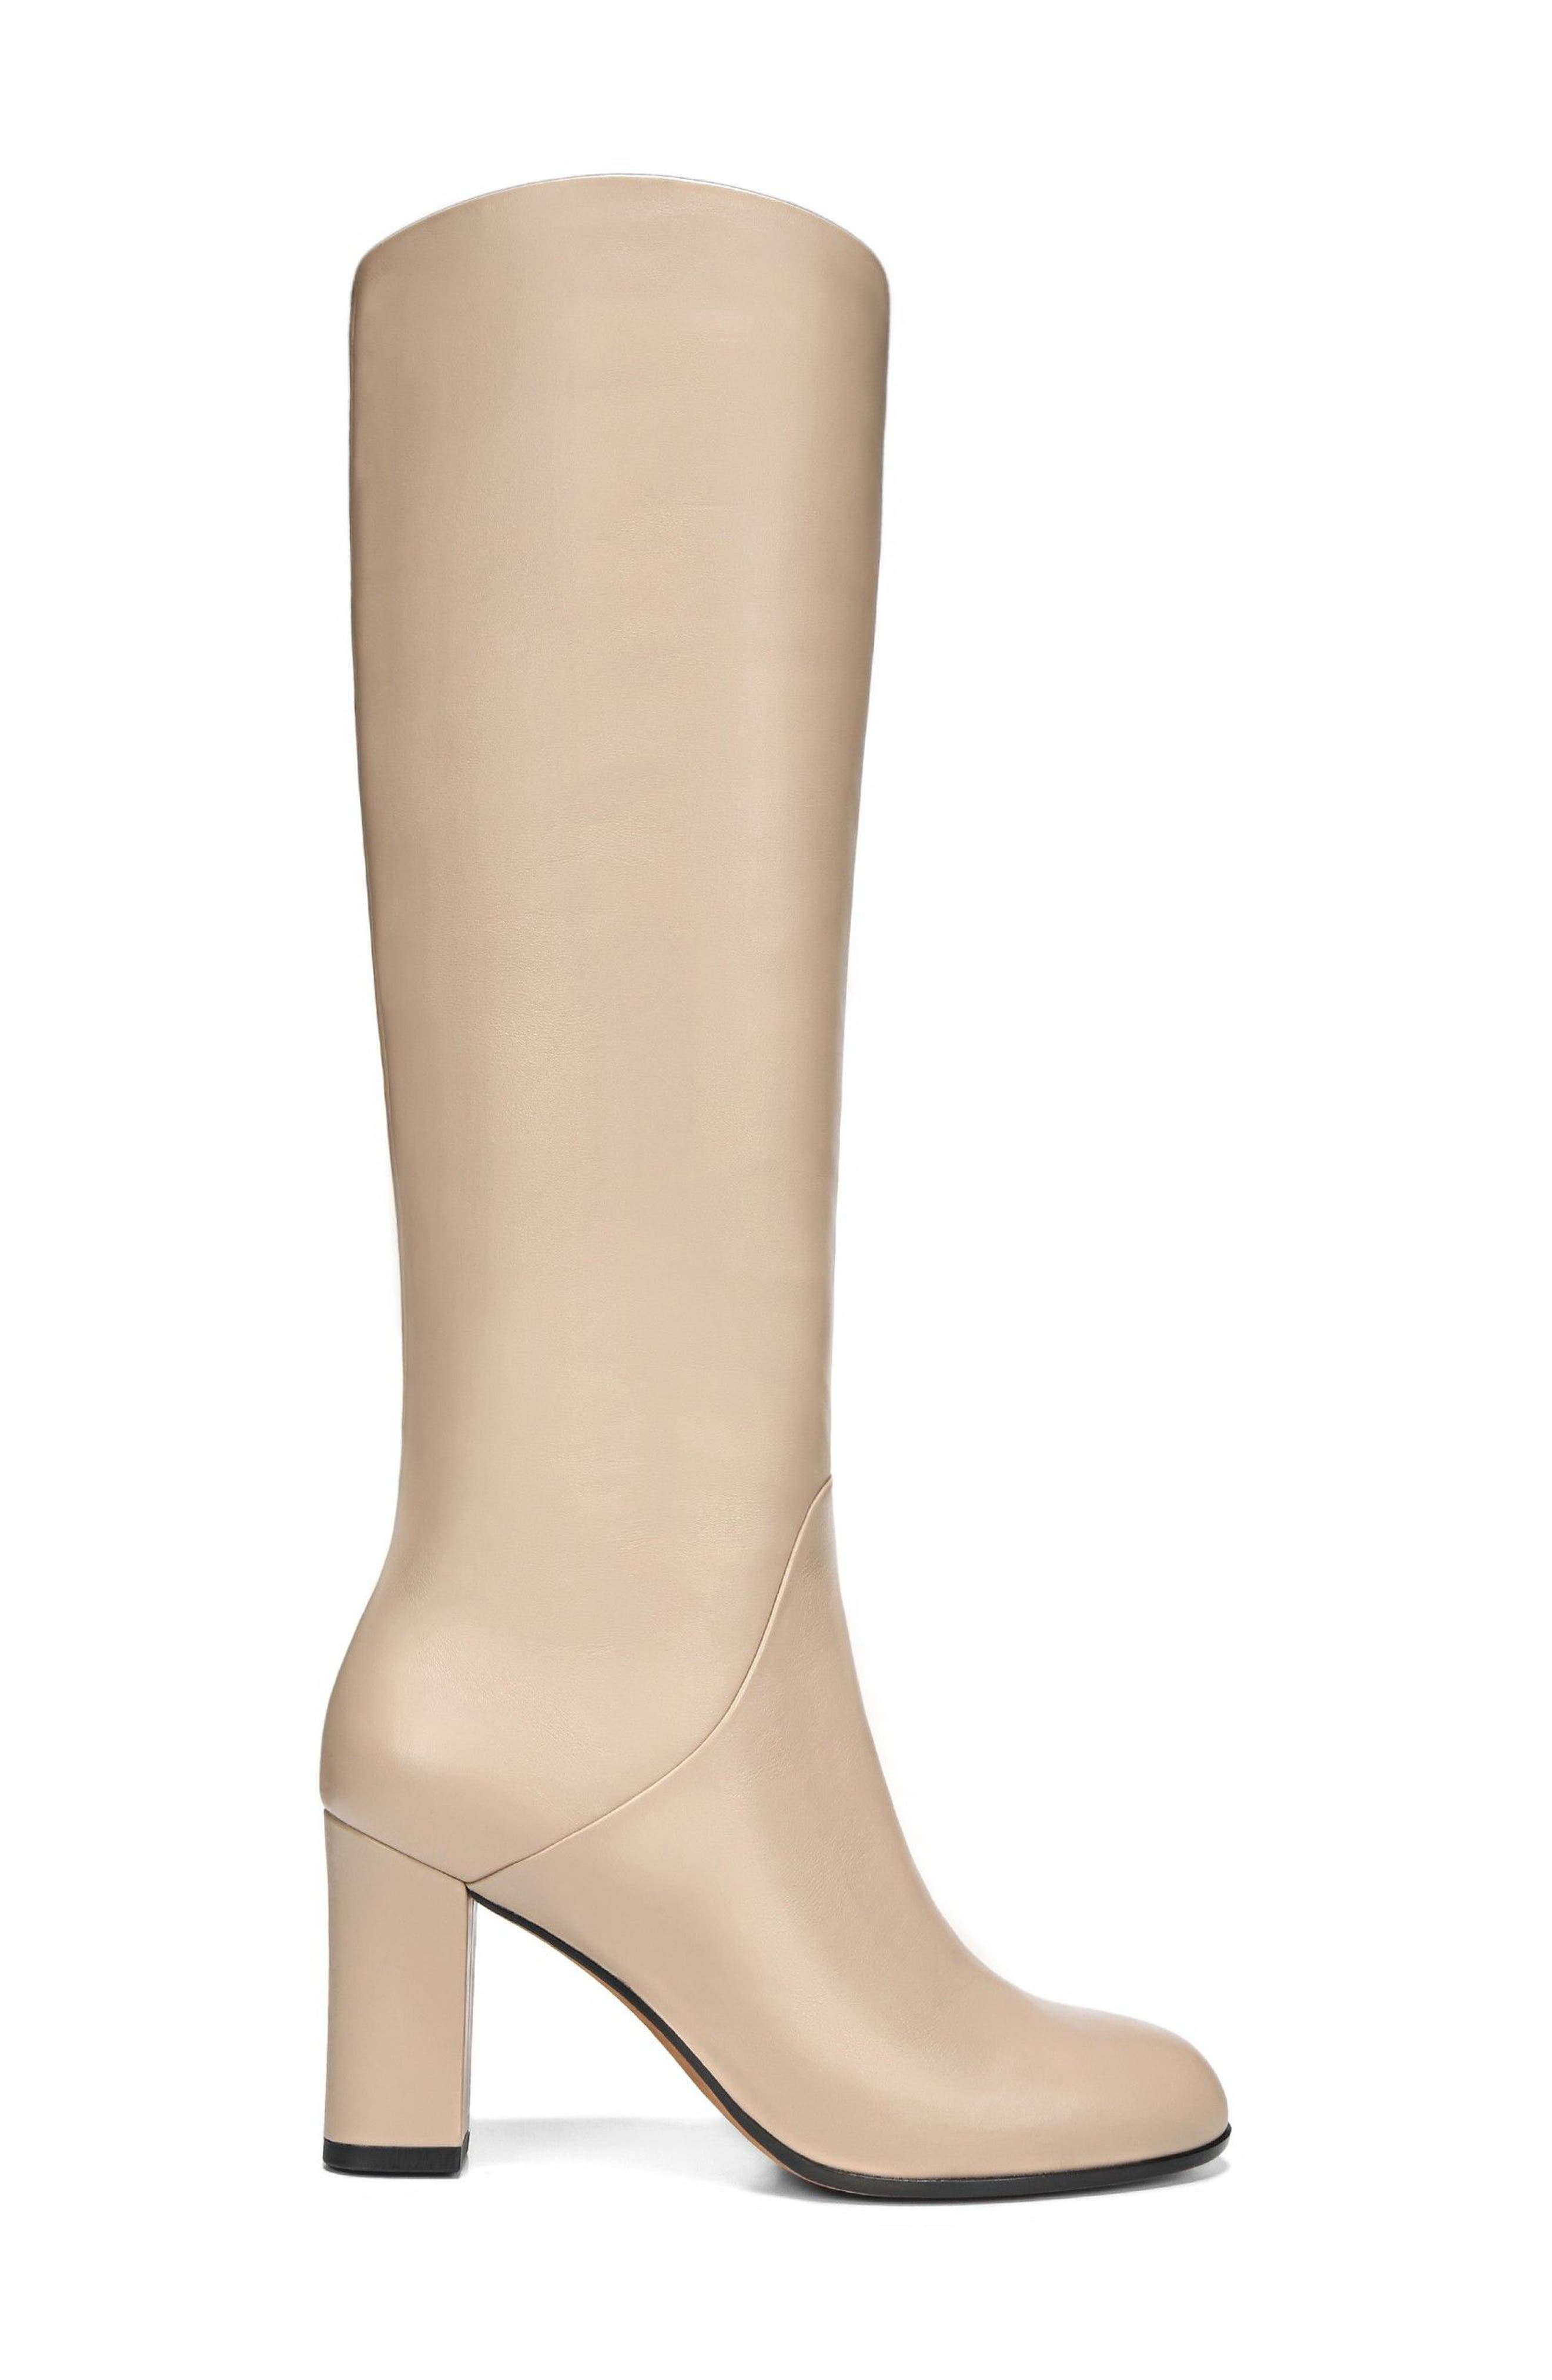 Alternate Image 3  - Via Spiga Soho Knee High Boot (Women)